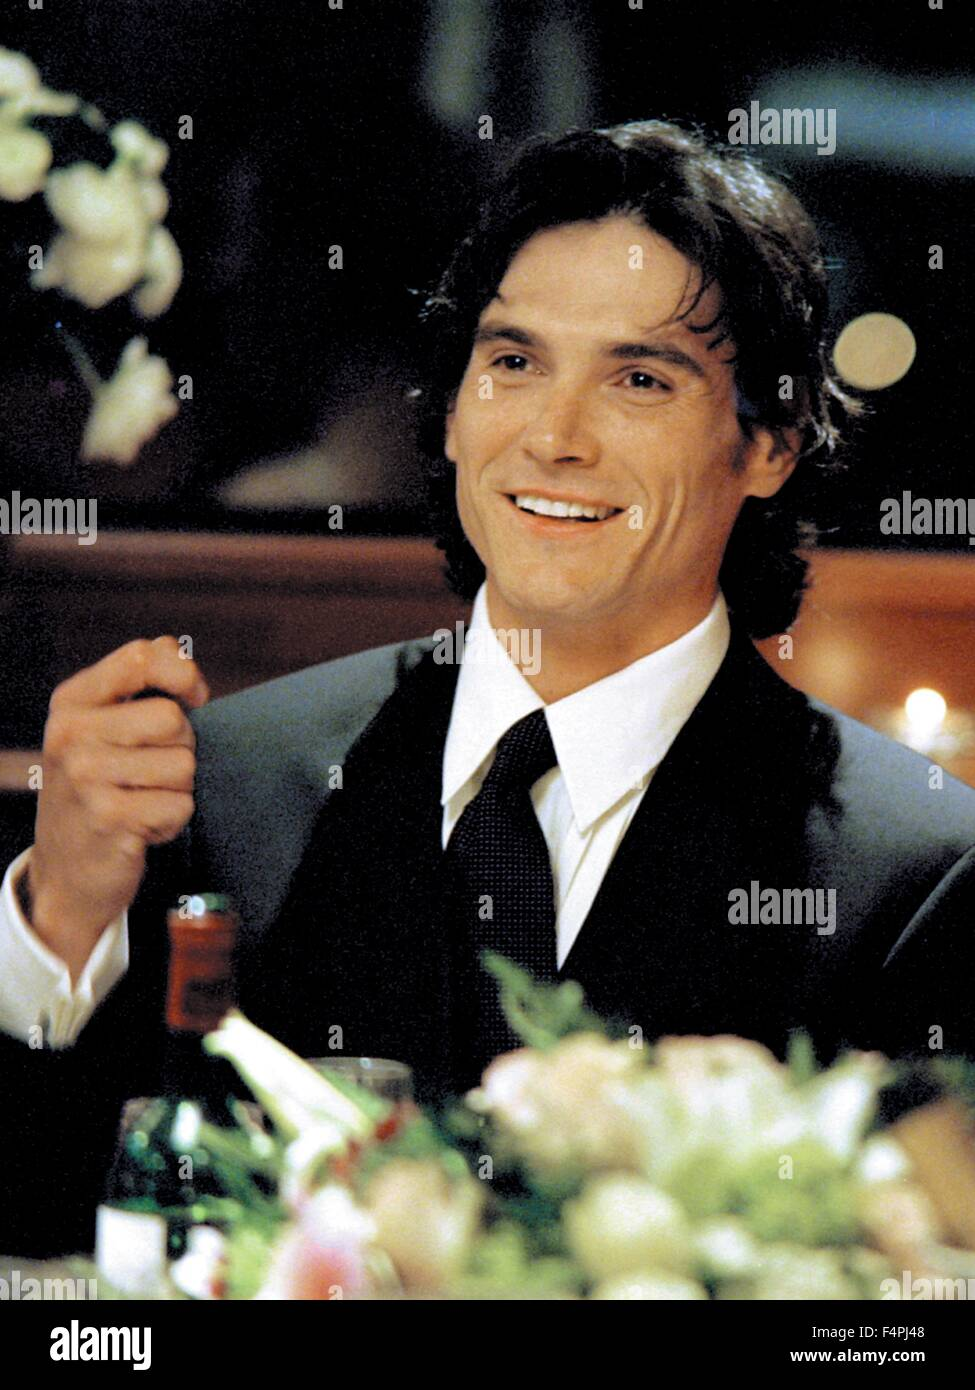 Billy Crudup / Big Fish / 2003 directed by Tim Burton [Columbia Pictures] - Stock Image